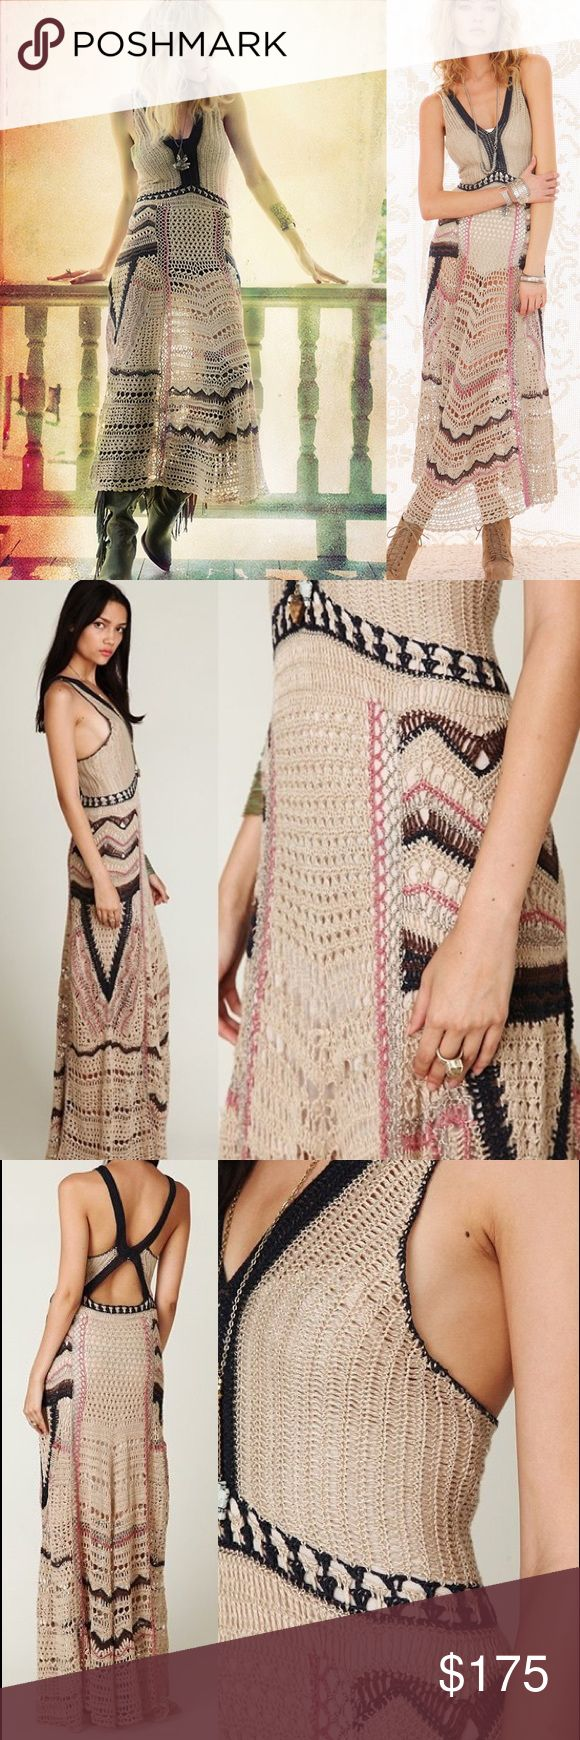 Free People Spun Eighty Stages Crochet Dress Sheer crochet maxi dress with colorful patterns throughout. Crossing straps in the back. 100% Linen Dry Clean Only *Import NWT- however the original tag with barcode came off when I purchased in-store at a FP boutique. They placed their own FP tag with hand written price and product code, which is 22787766. Not sure if that matters to anyone, as it's still new with tags and never worn, but I wanted to be clear :)  Measurements for Size Small…